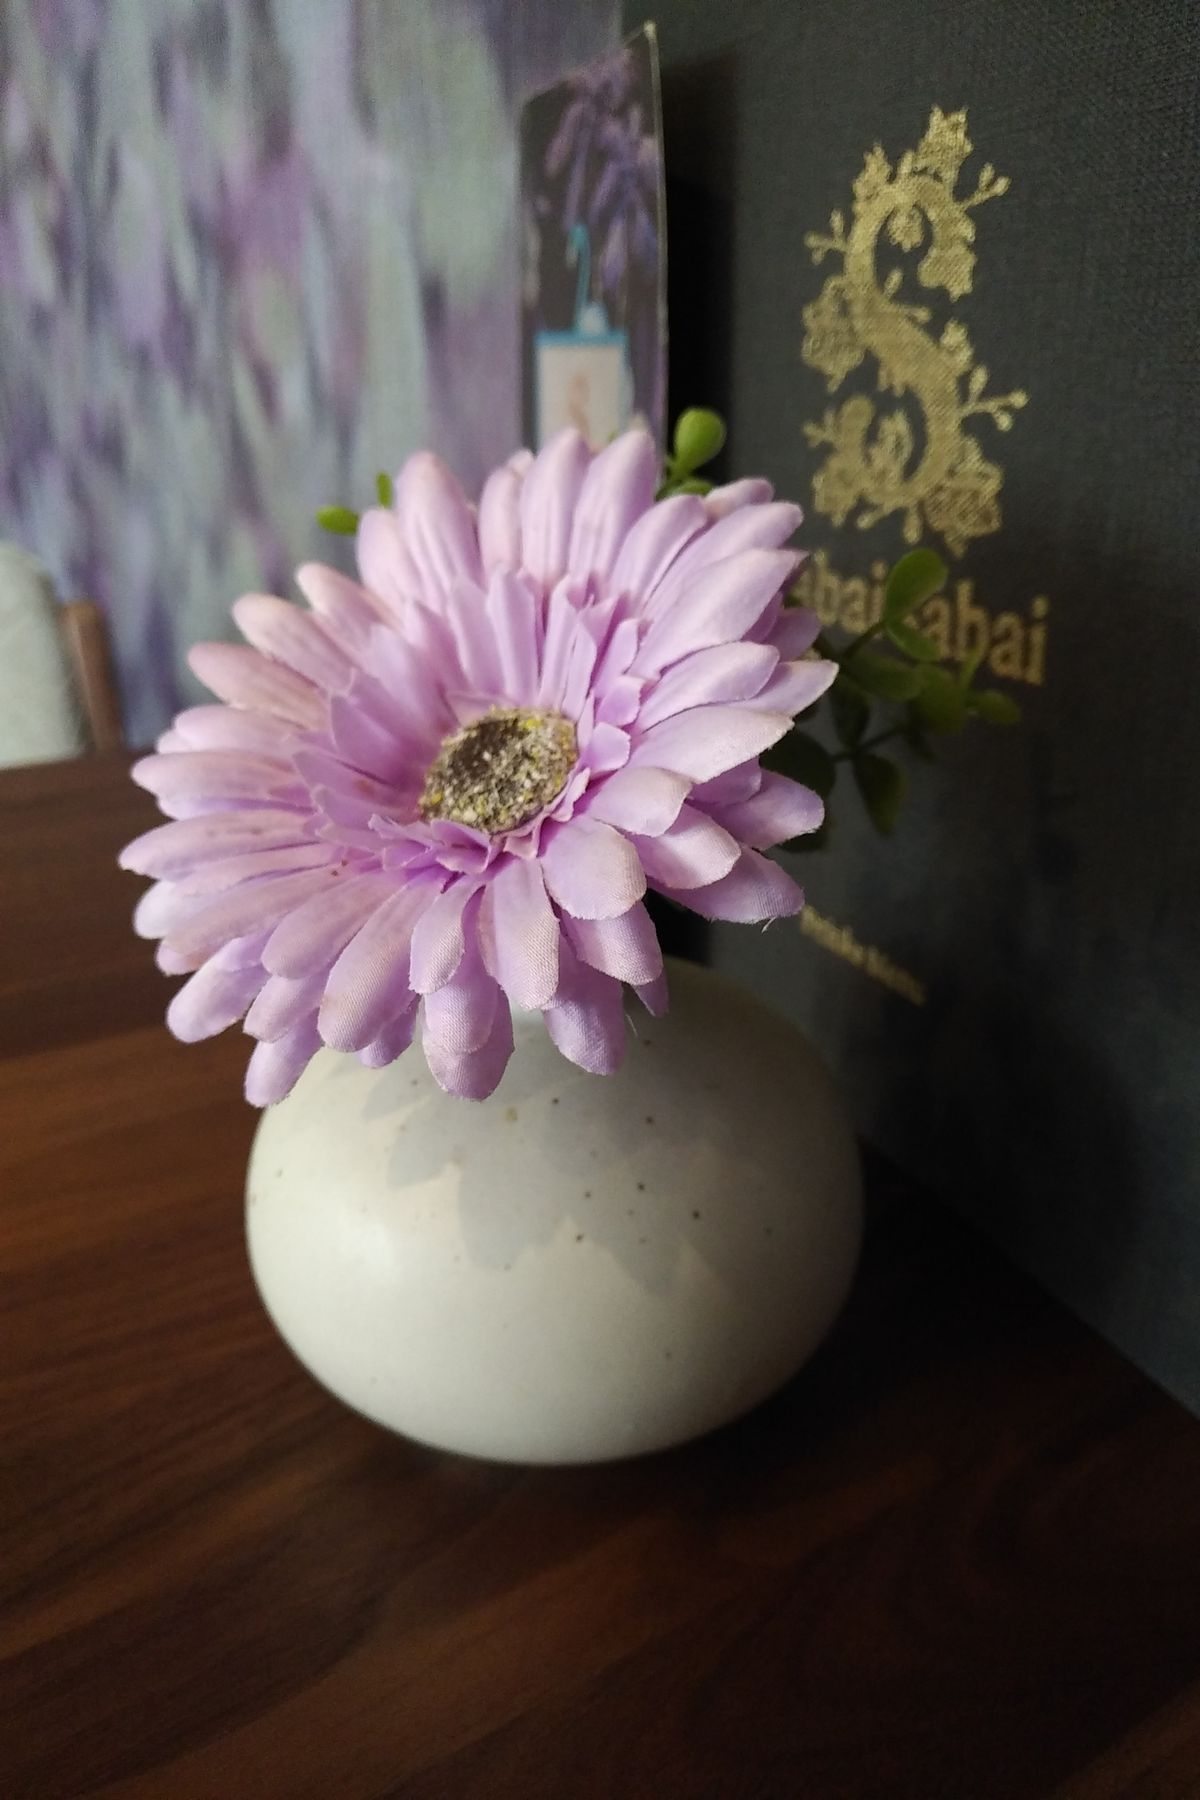 Flowers - made from fine, pink plastic